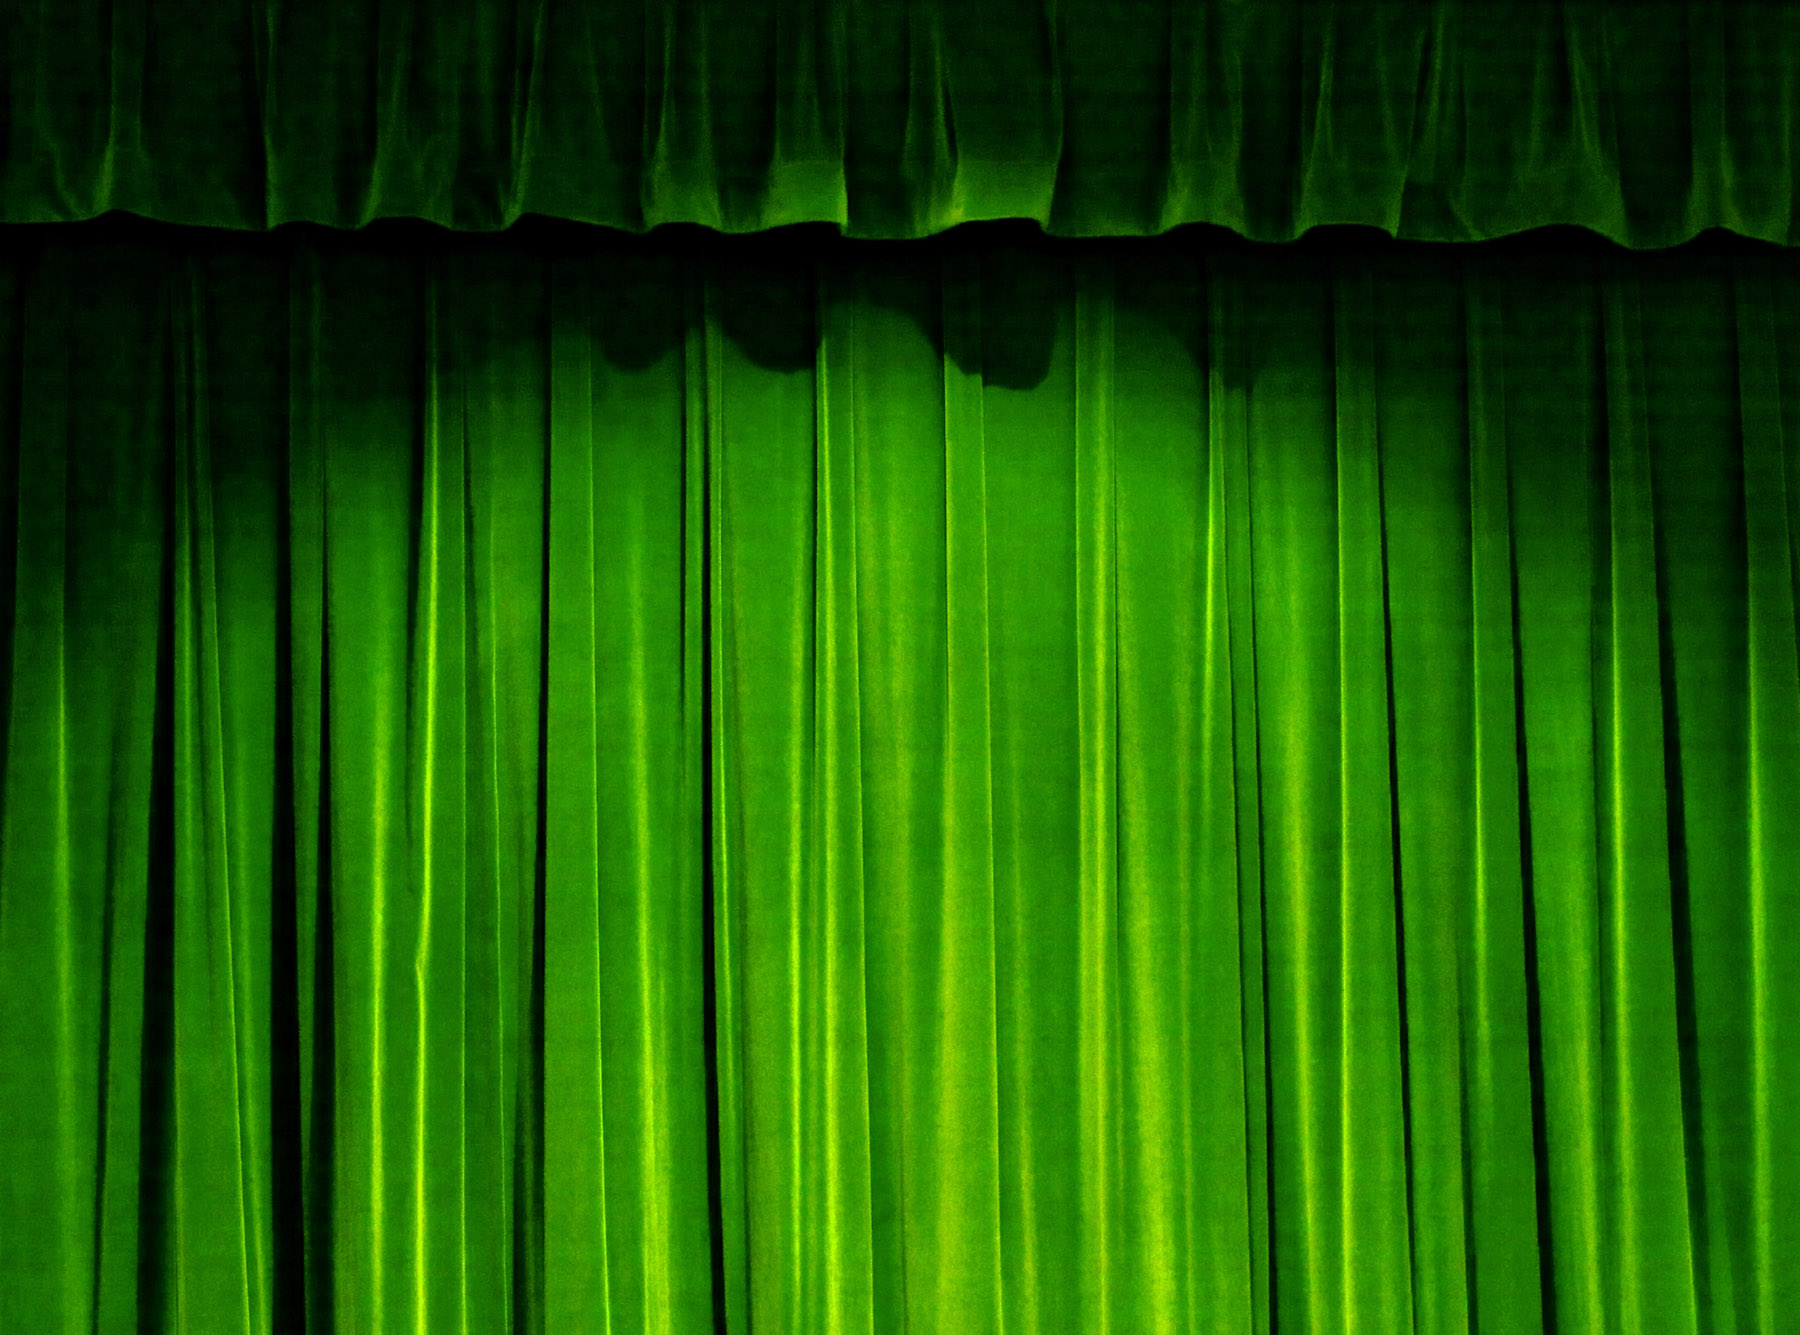 HD green curtain material 27560